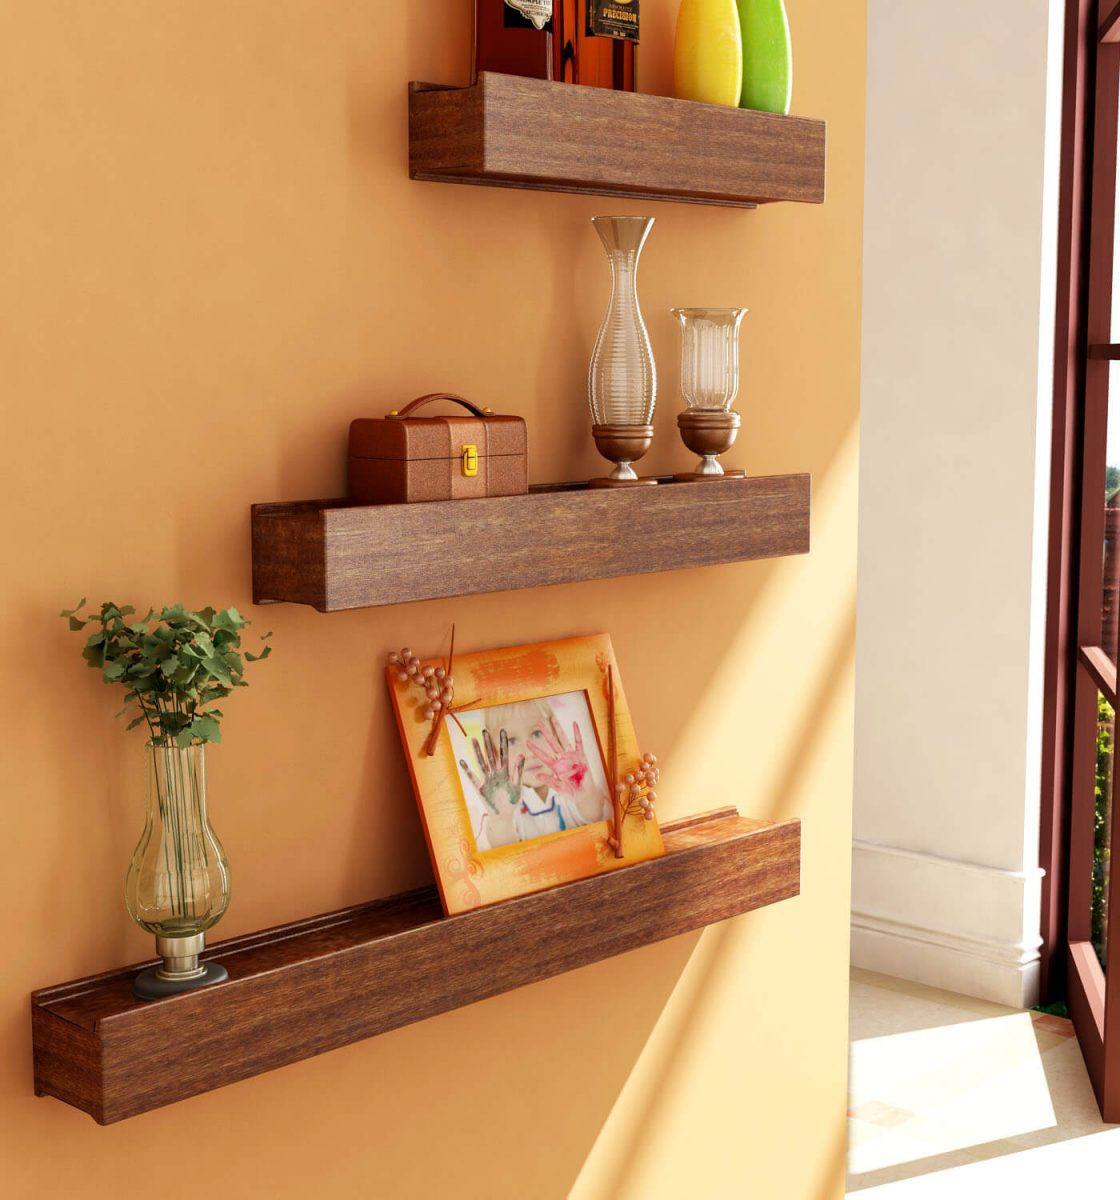 Kitchen Decoration Pakistan: Wooden Shelf For Home Decoration Three Pieces In Pakistan